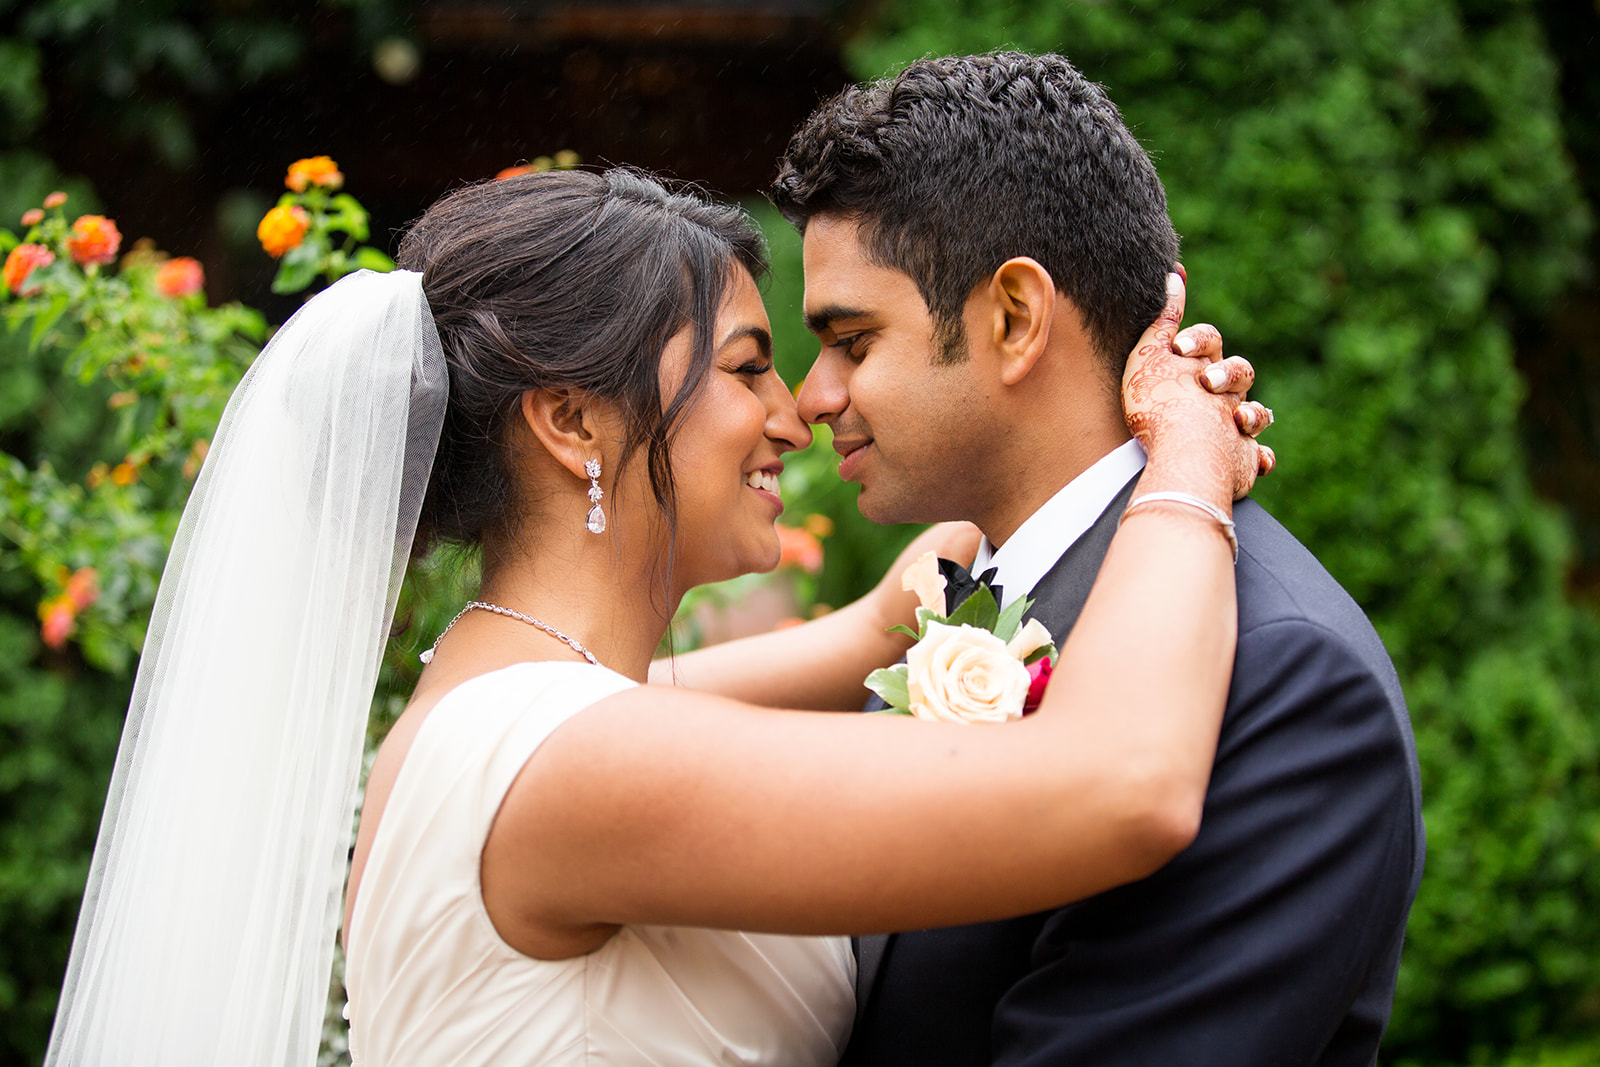 Priyanka  Chandras Indian American Fusion Wedding - Image Property of www.j-dphoto.com